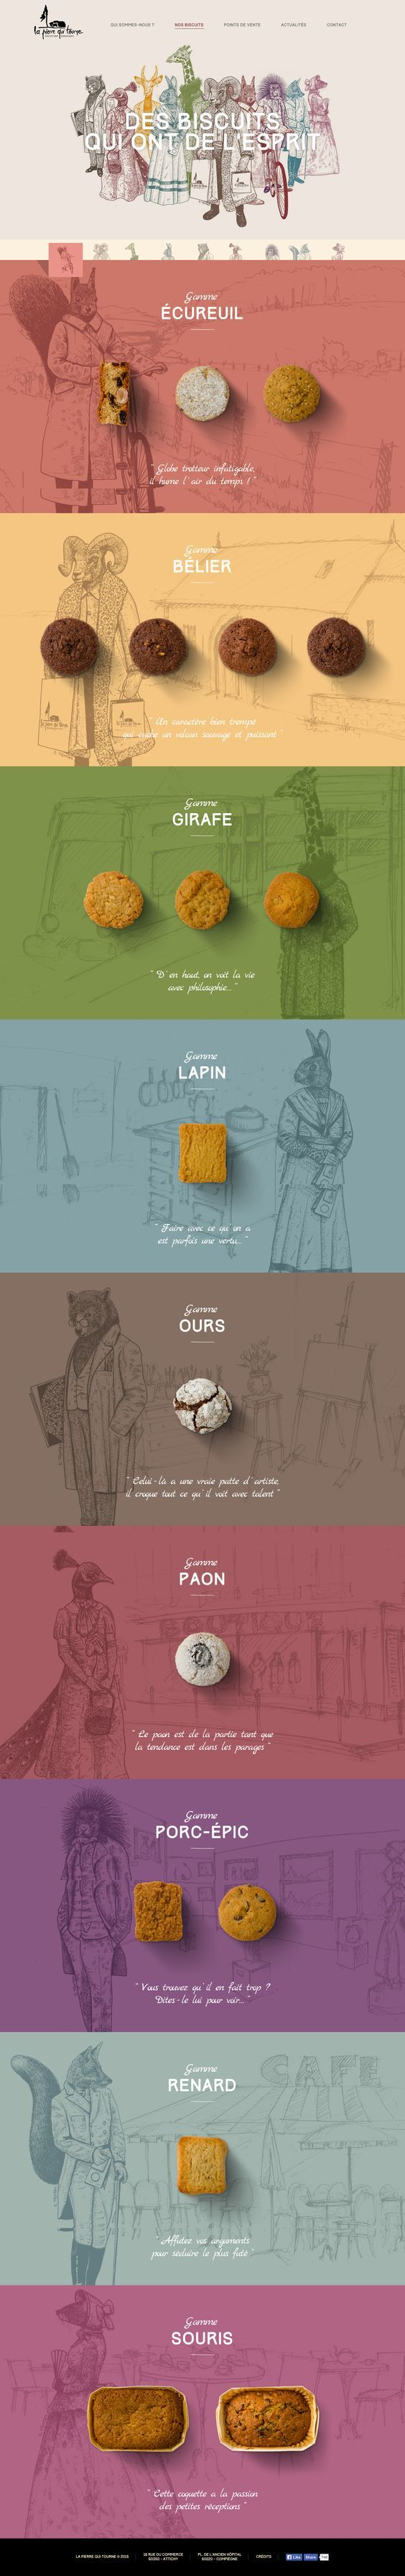 La Pierre Qui Tourne. French cookies. (More design inspiration www.aldenchong.com):